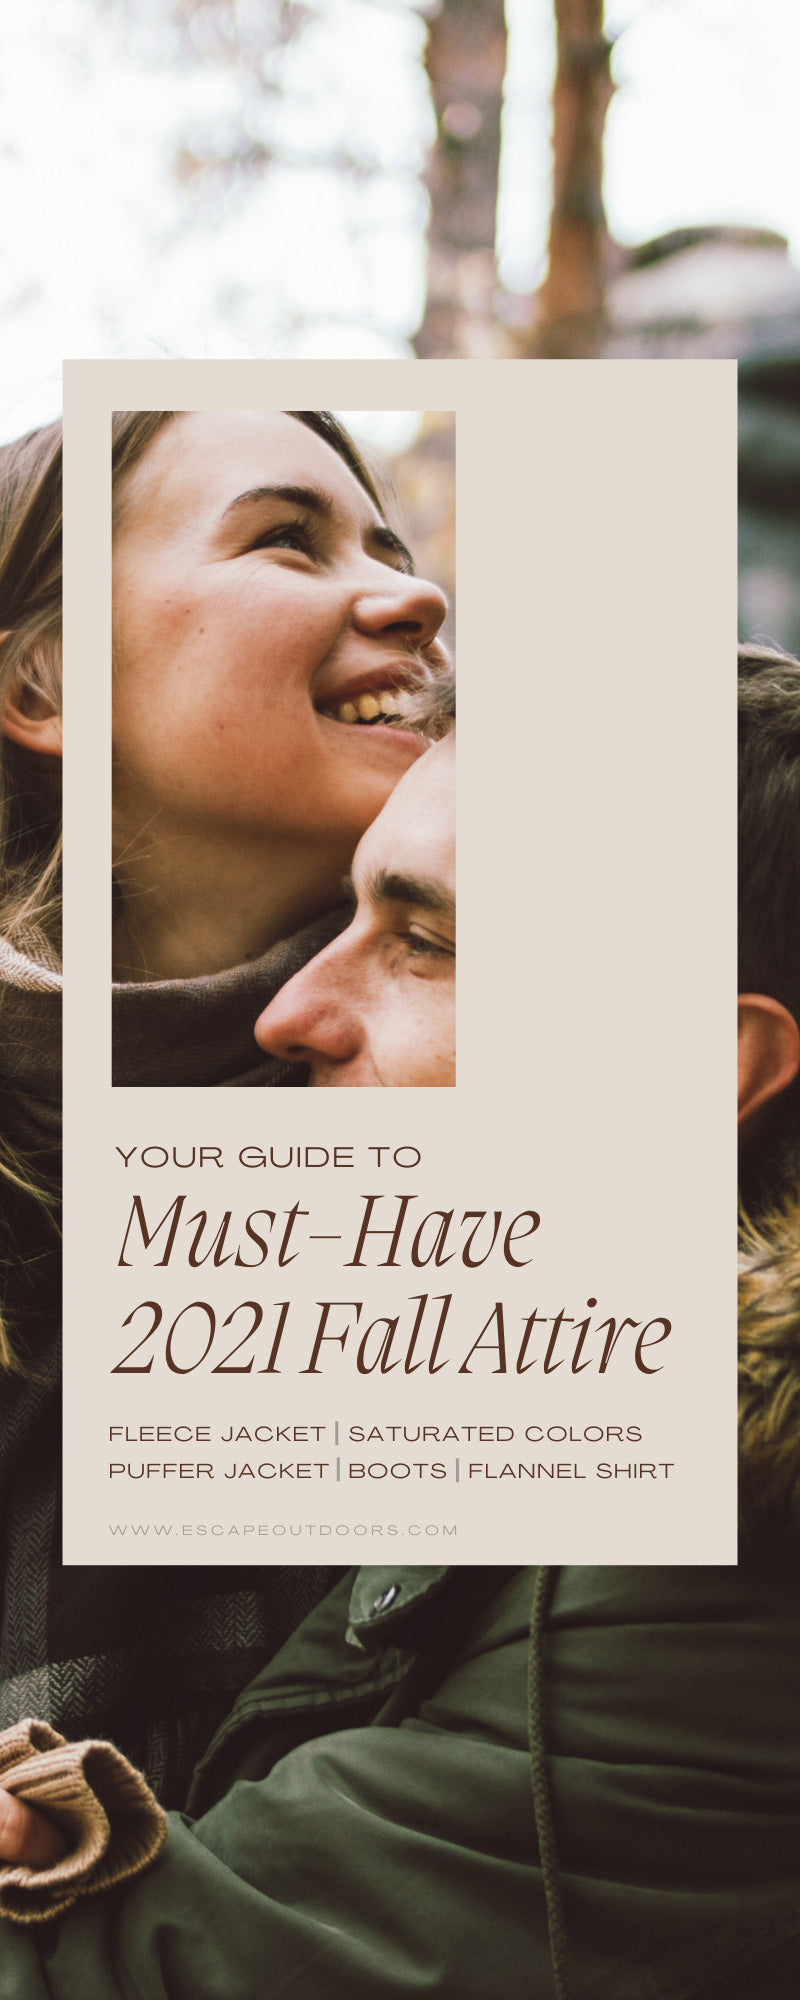 Your Guide to Must-Have 2021 Fall Attire